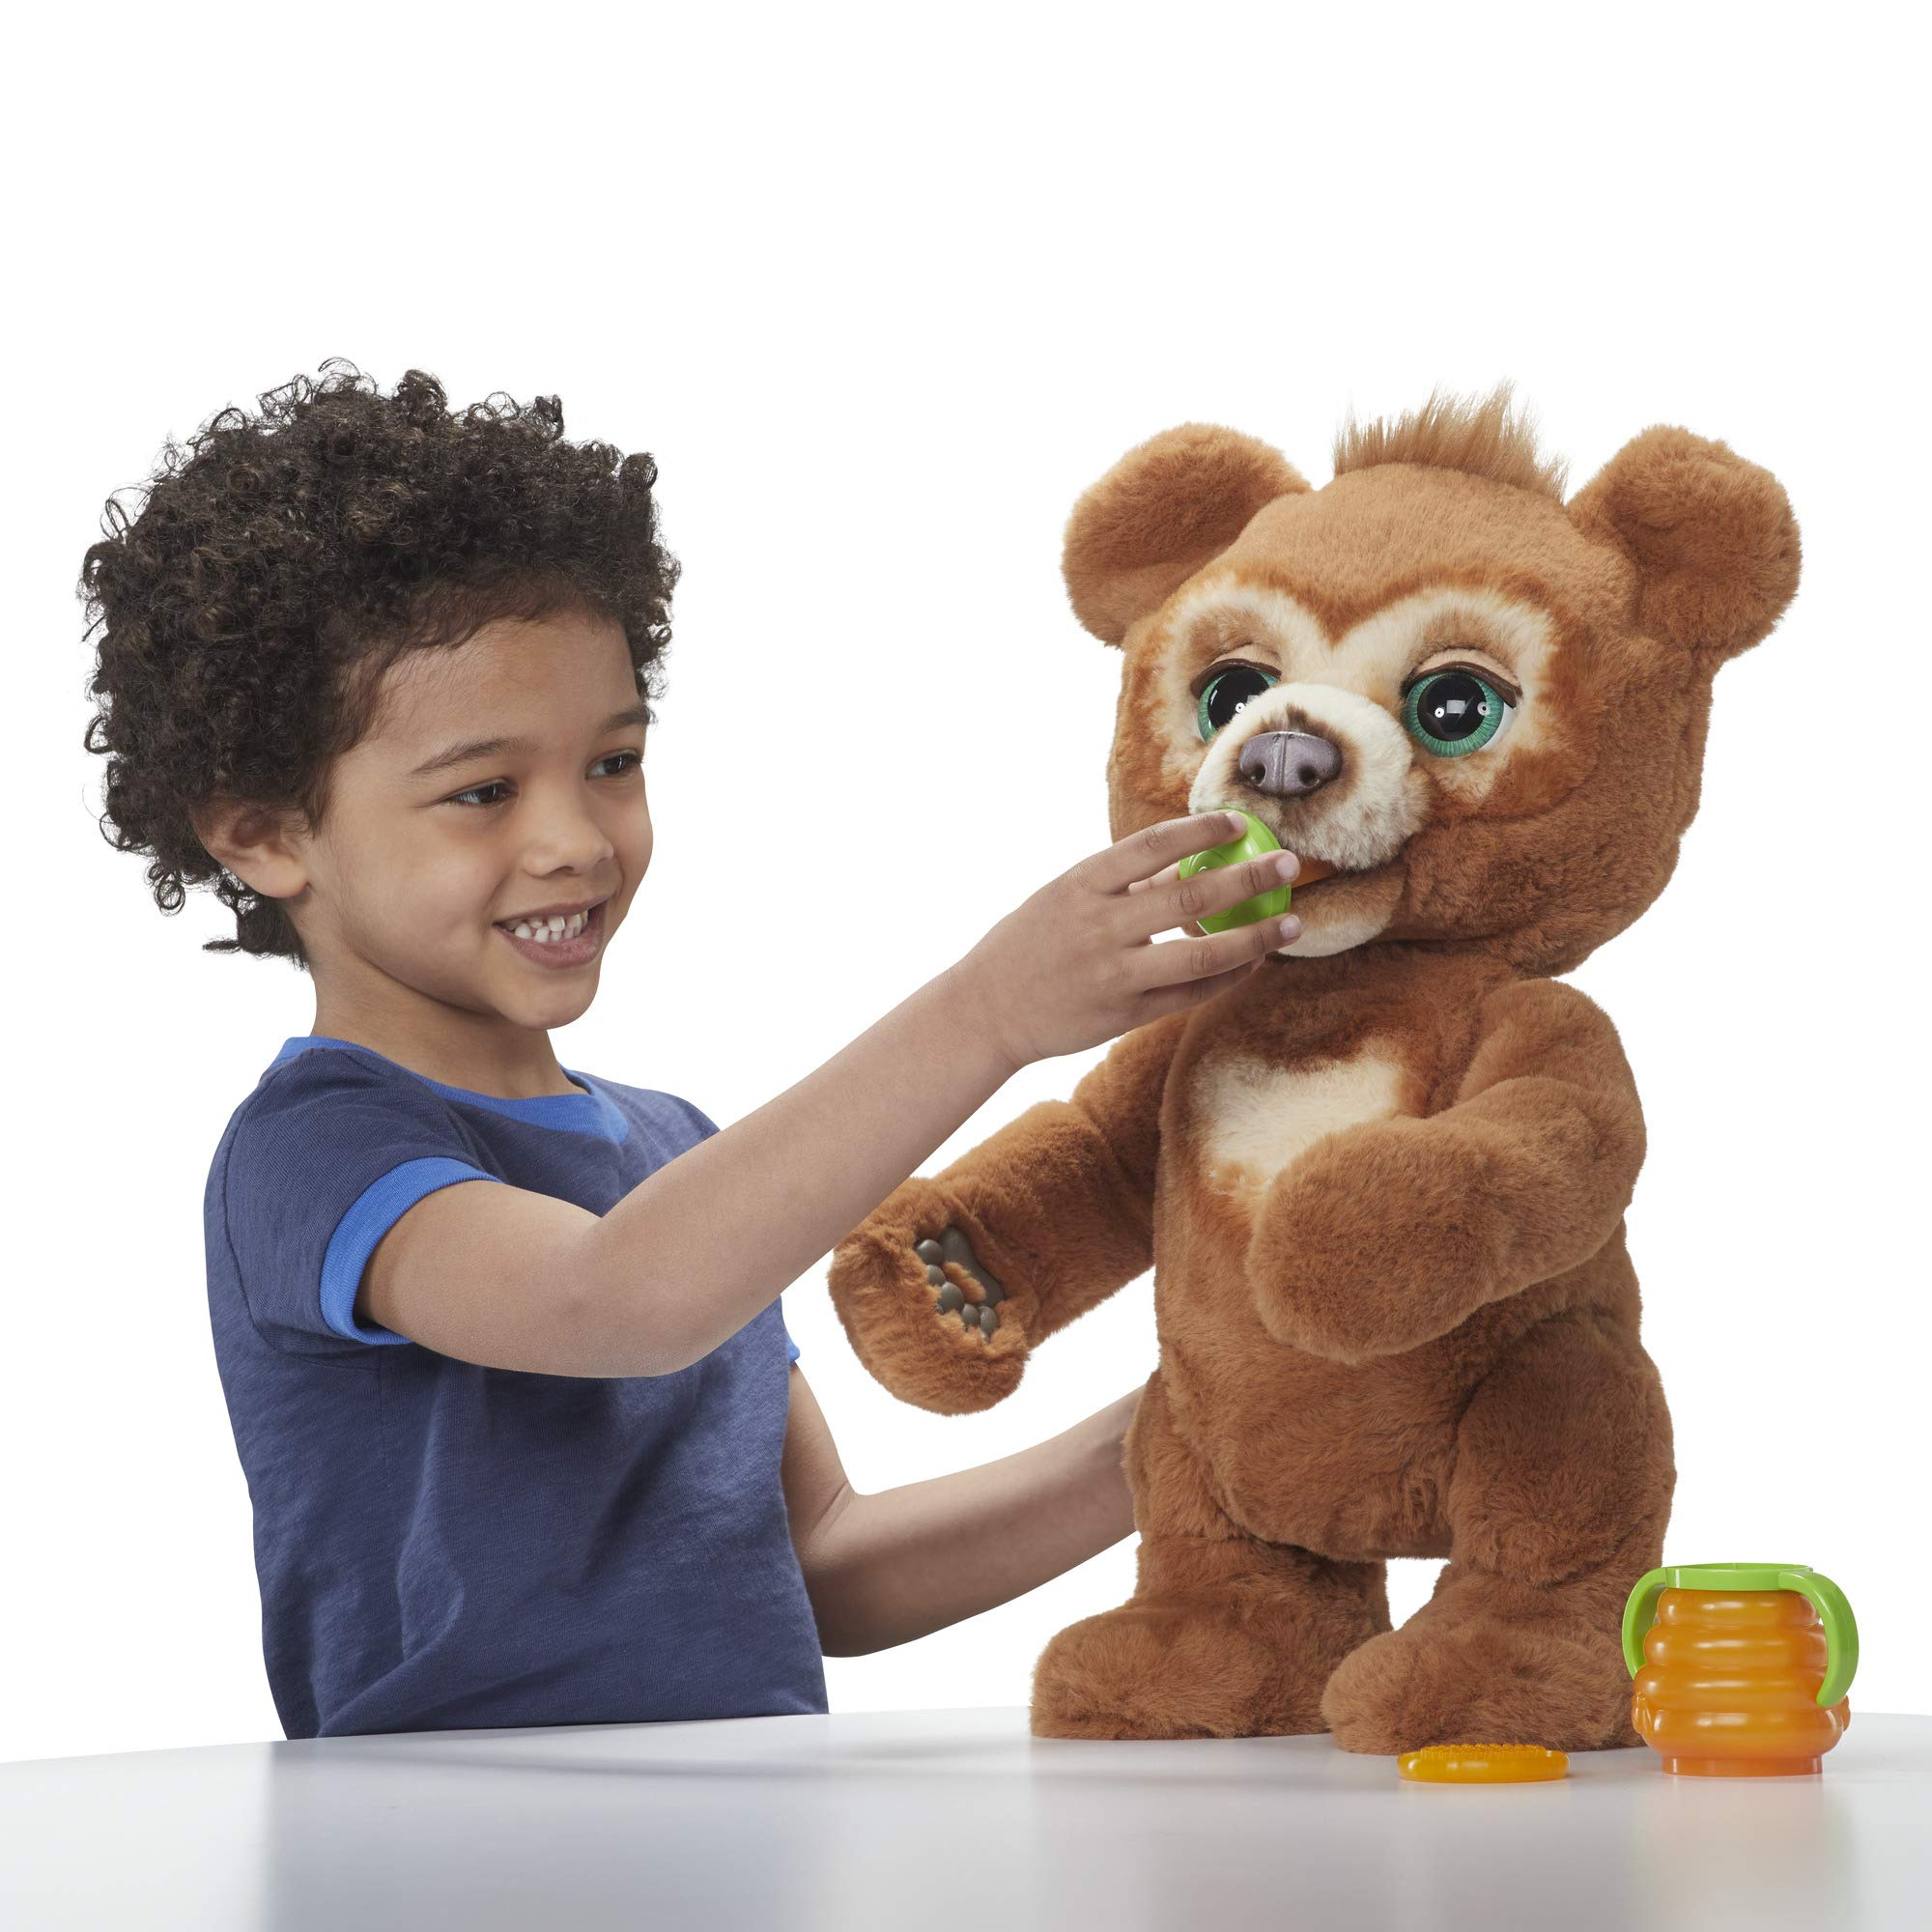 FurReal Cubby, The Curious Bear Interactive Plush Toy, Ages 4 and Up by FurReal (Image #7)